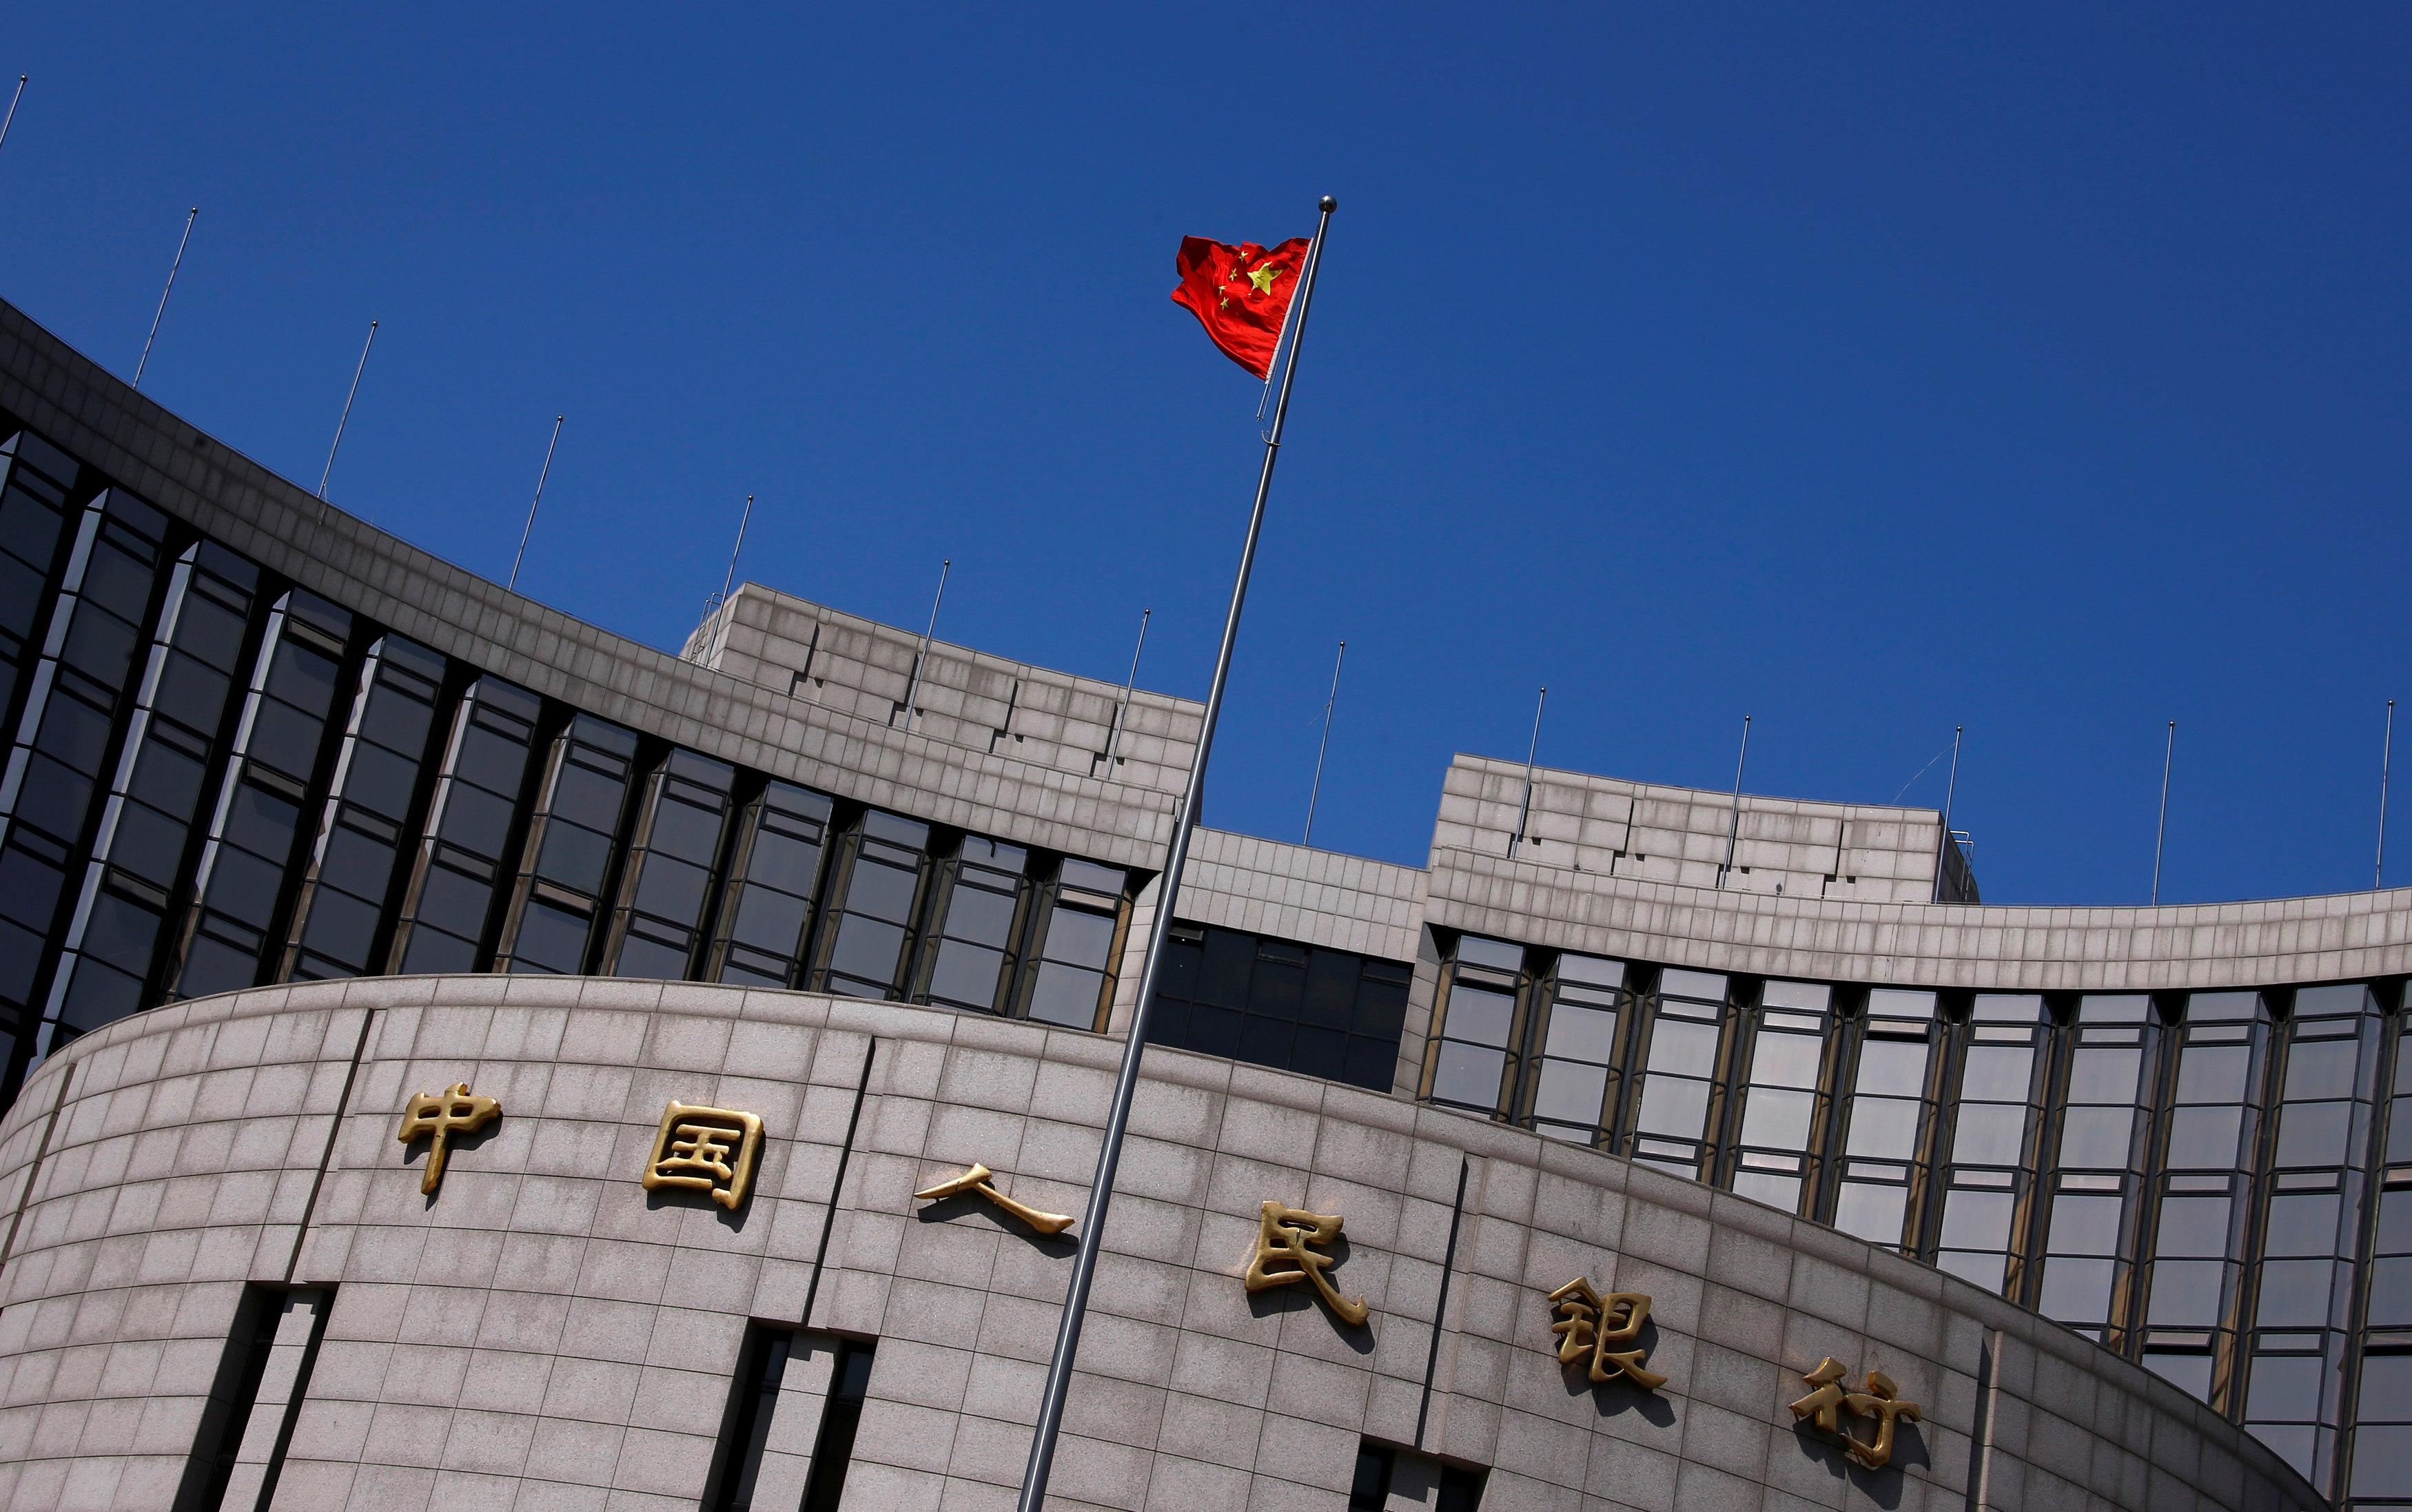 A Chinese national flag flutters outside the headquarters of the People's Bank of China, the Chinese central bank, in Beijing, China April 3, 2014. B Petar Kujundzic